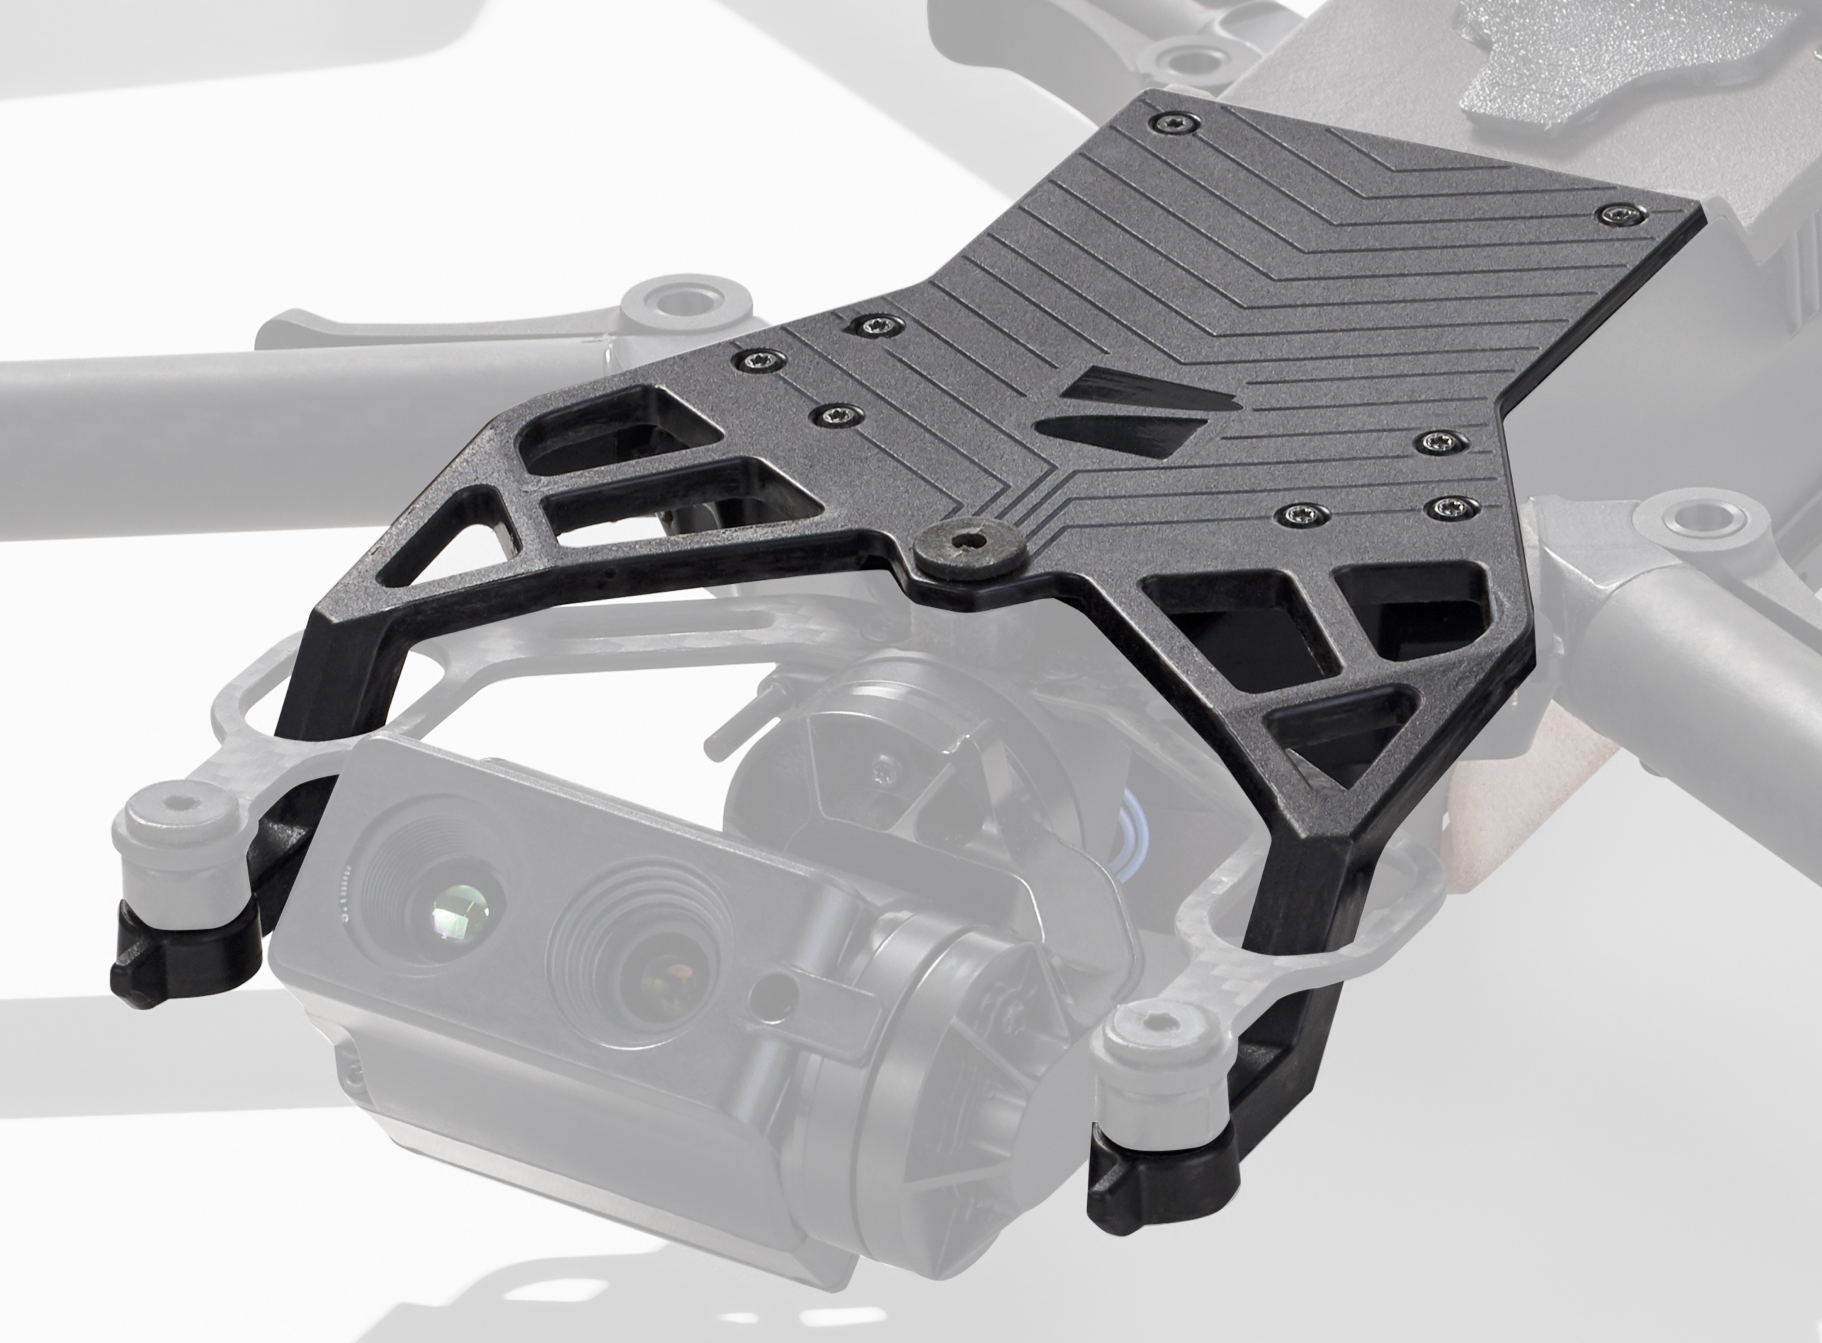 Arris Multimaterial Drone Bracket for Radio Frequency transparency and Mechanical Performance